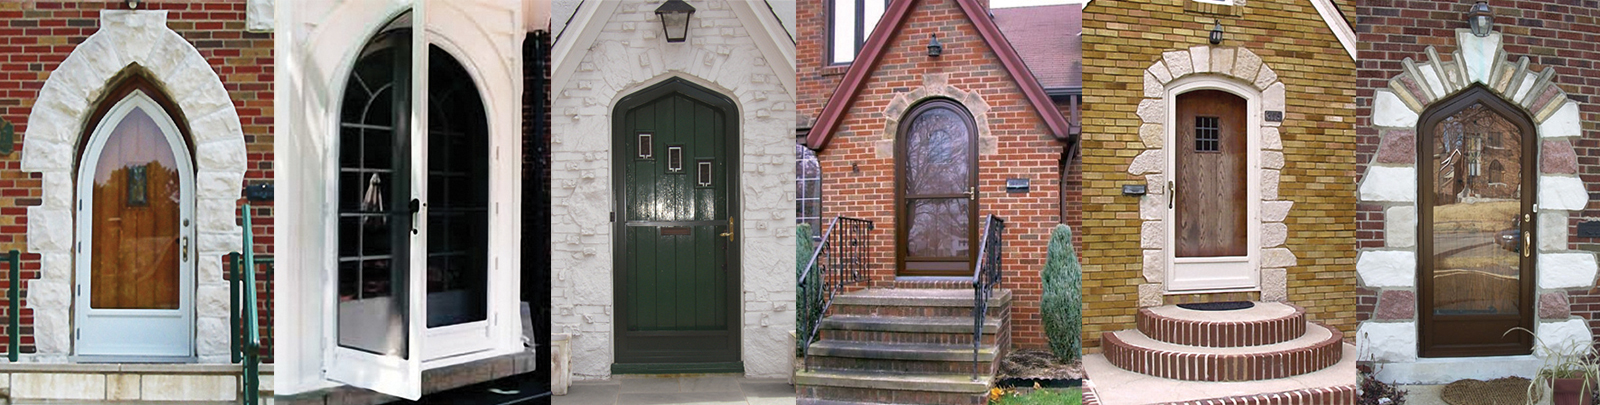 Variety Of Door Shapes - Arch Angle Custom Arched Top Storm Windows & Storm Doors